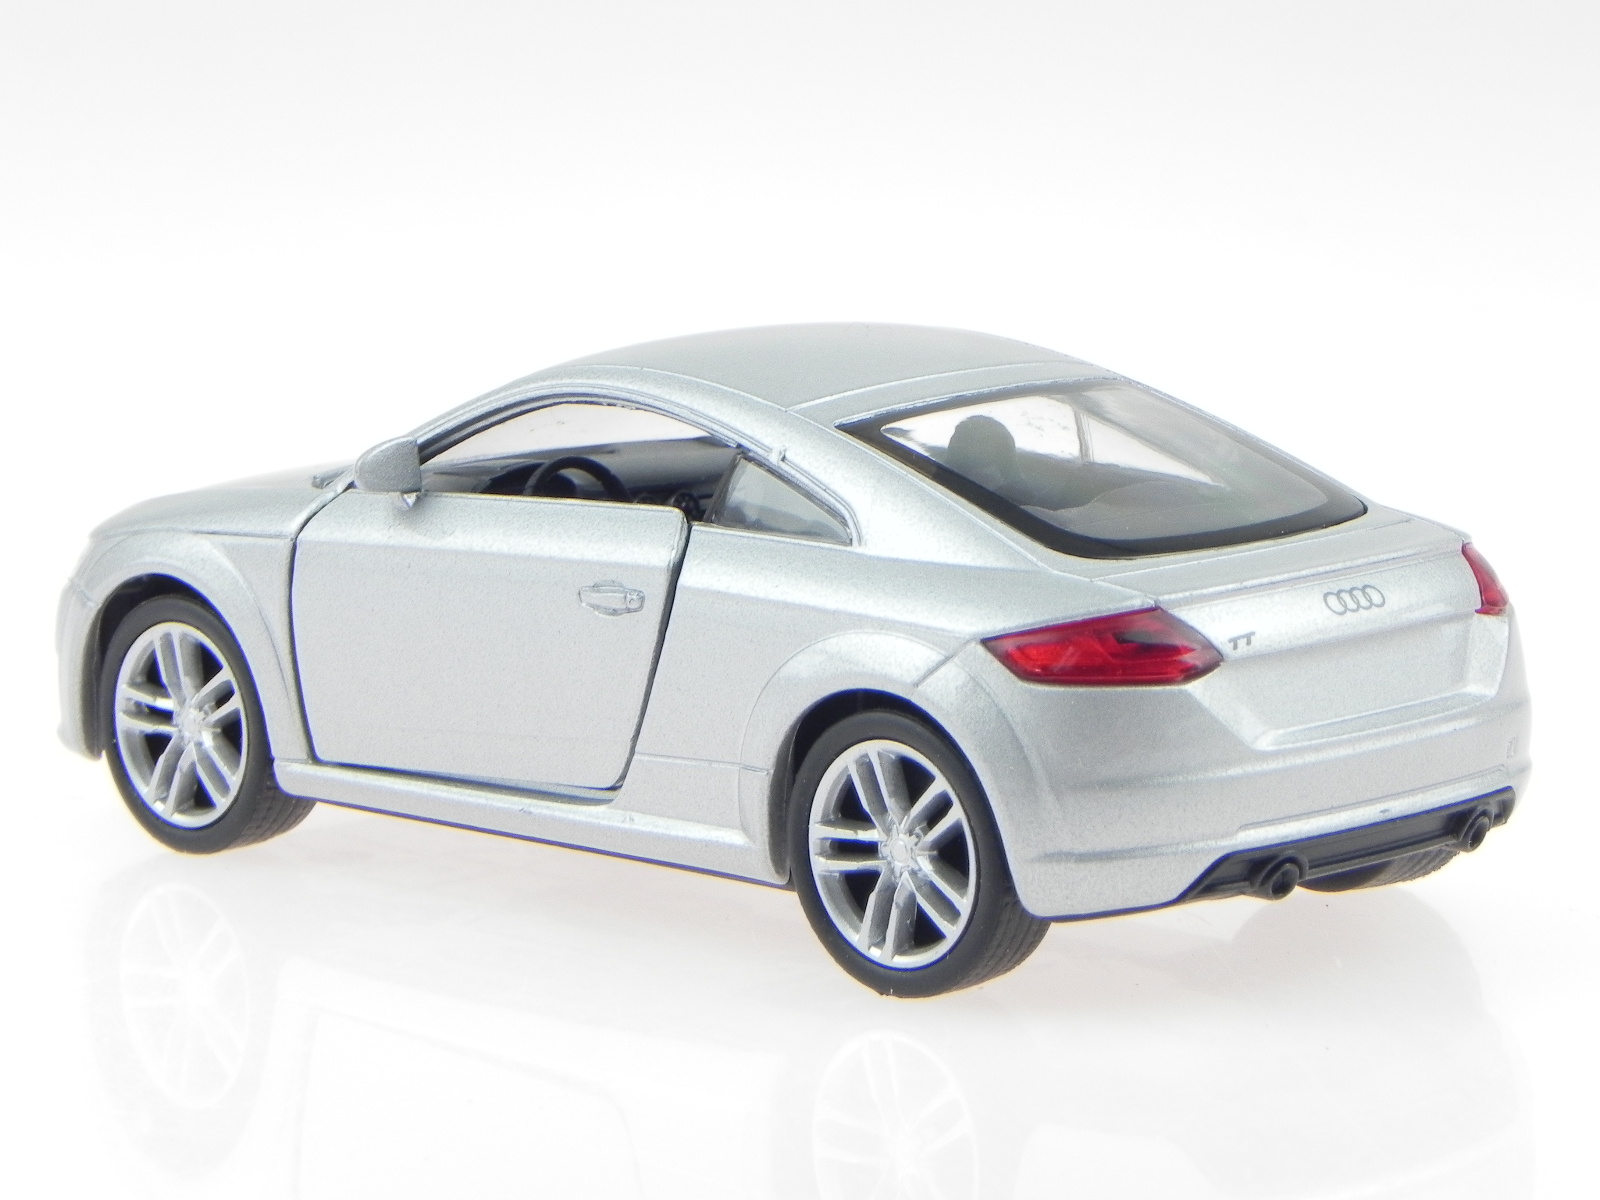 audi tt fv coupe 2014 silber modellauto 43695 welly 1 34. Black Bedroom Furniture Sets. Home Design Ideas